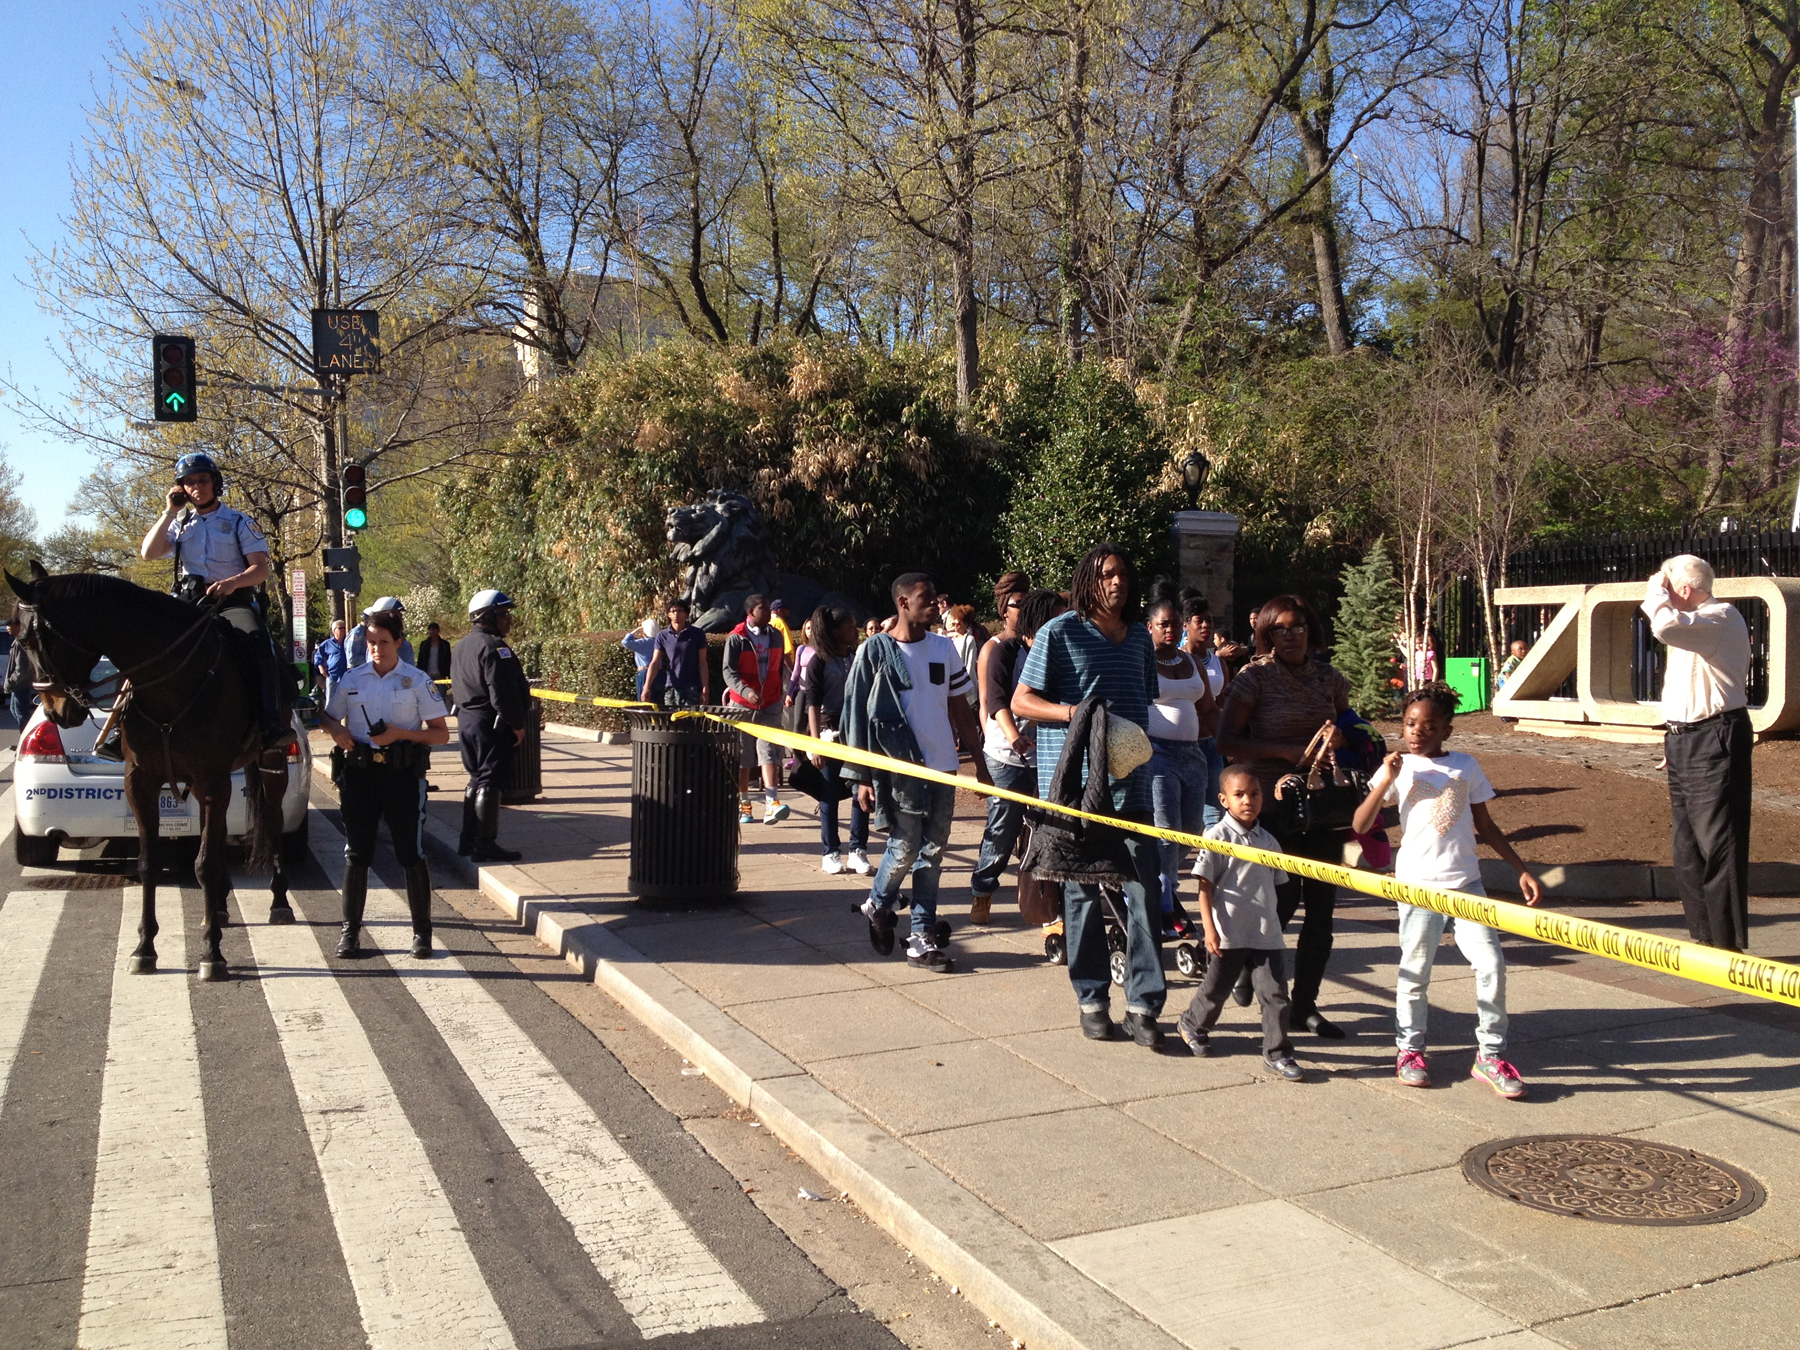 Police were tipped off about gang activity near National Zoo on day of shooting